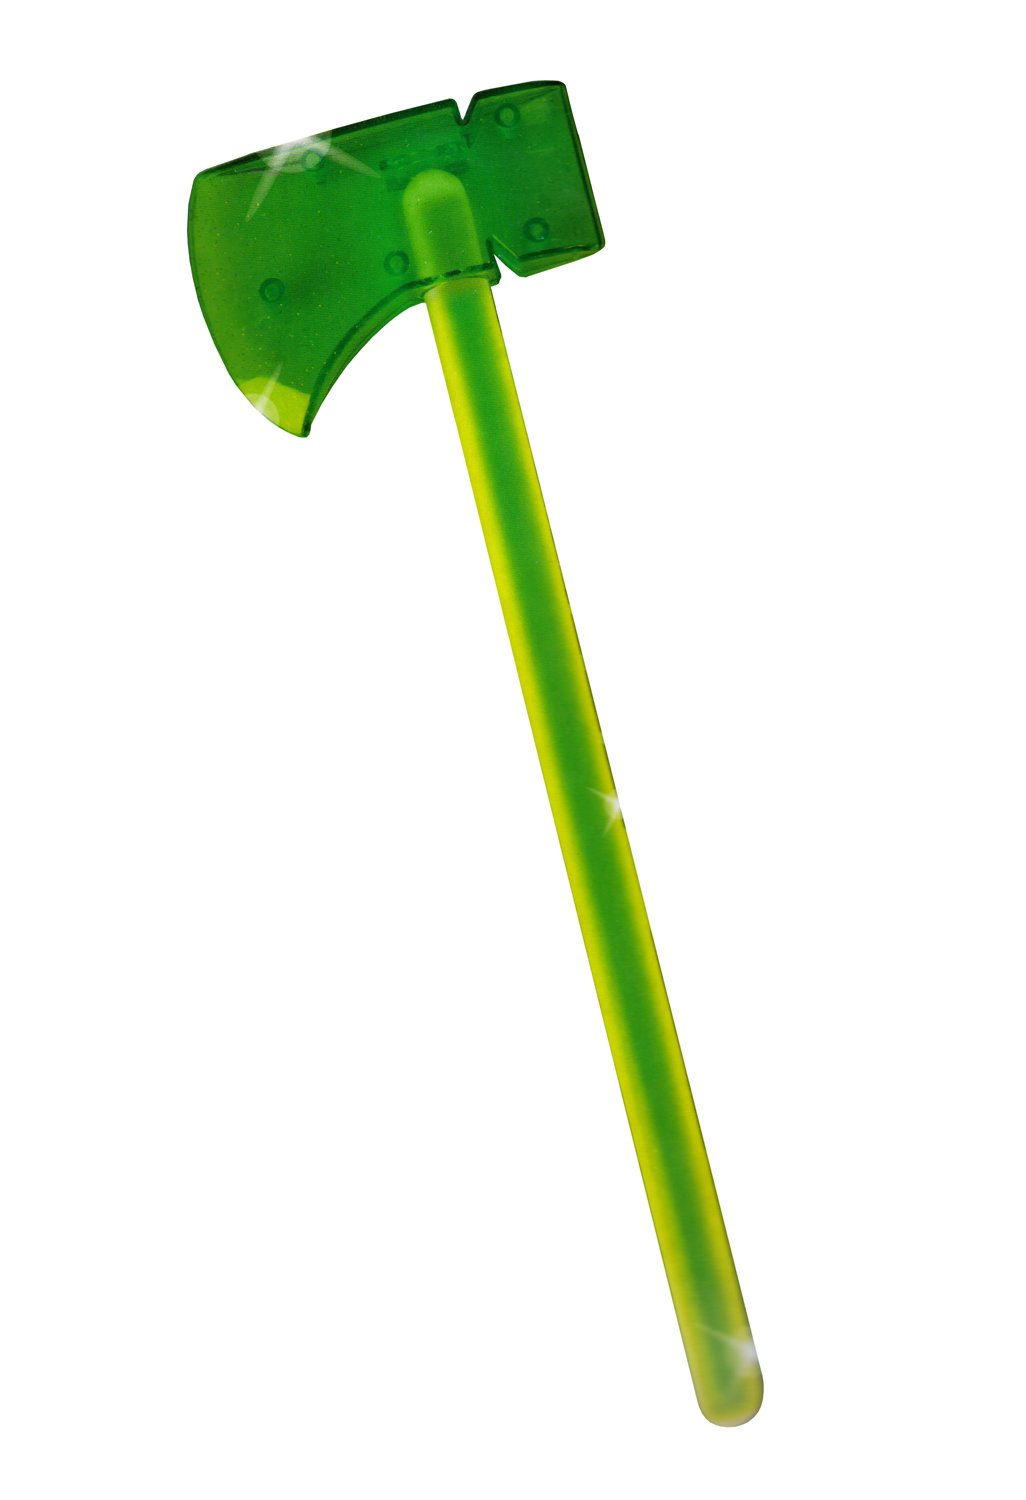 2 x Glow In The Dark Mini Axes Childrens Halloween Costume Accessory RMS International 46-0164